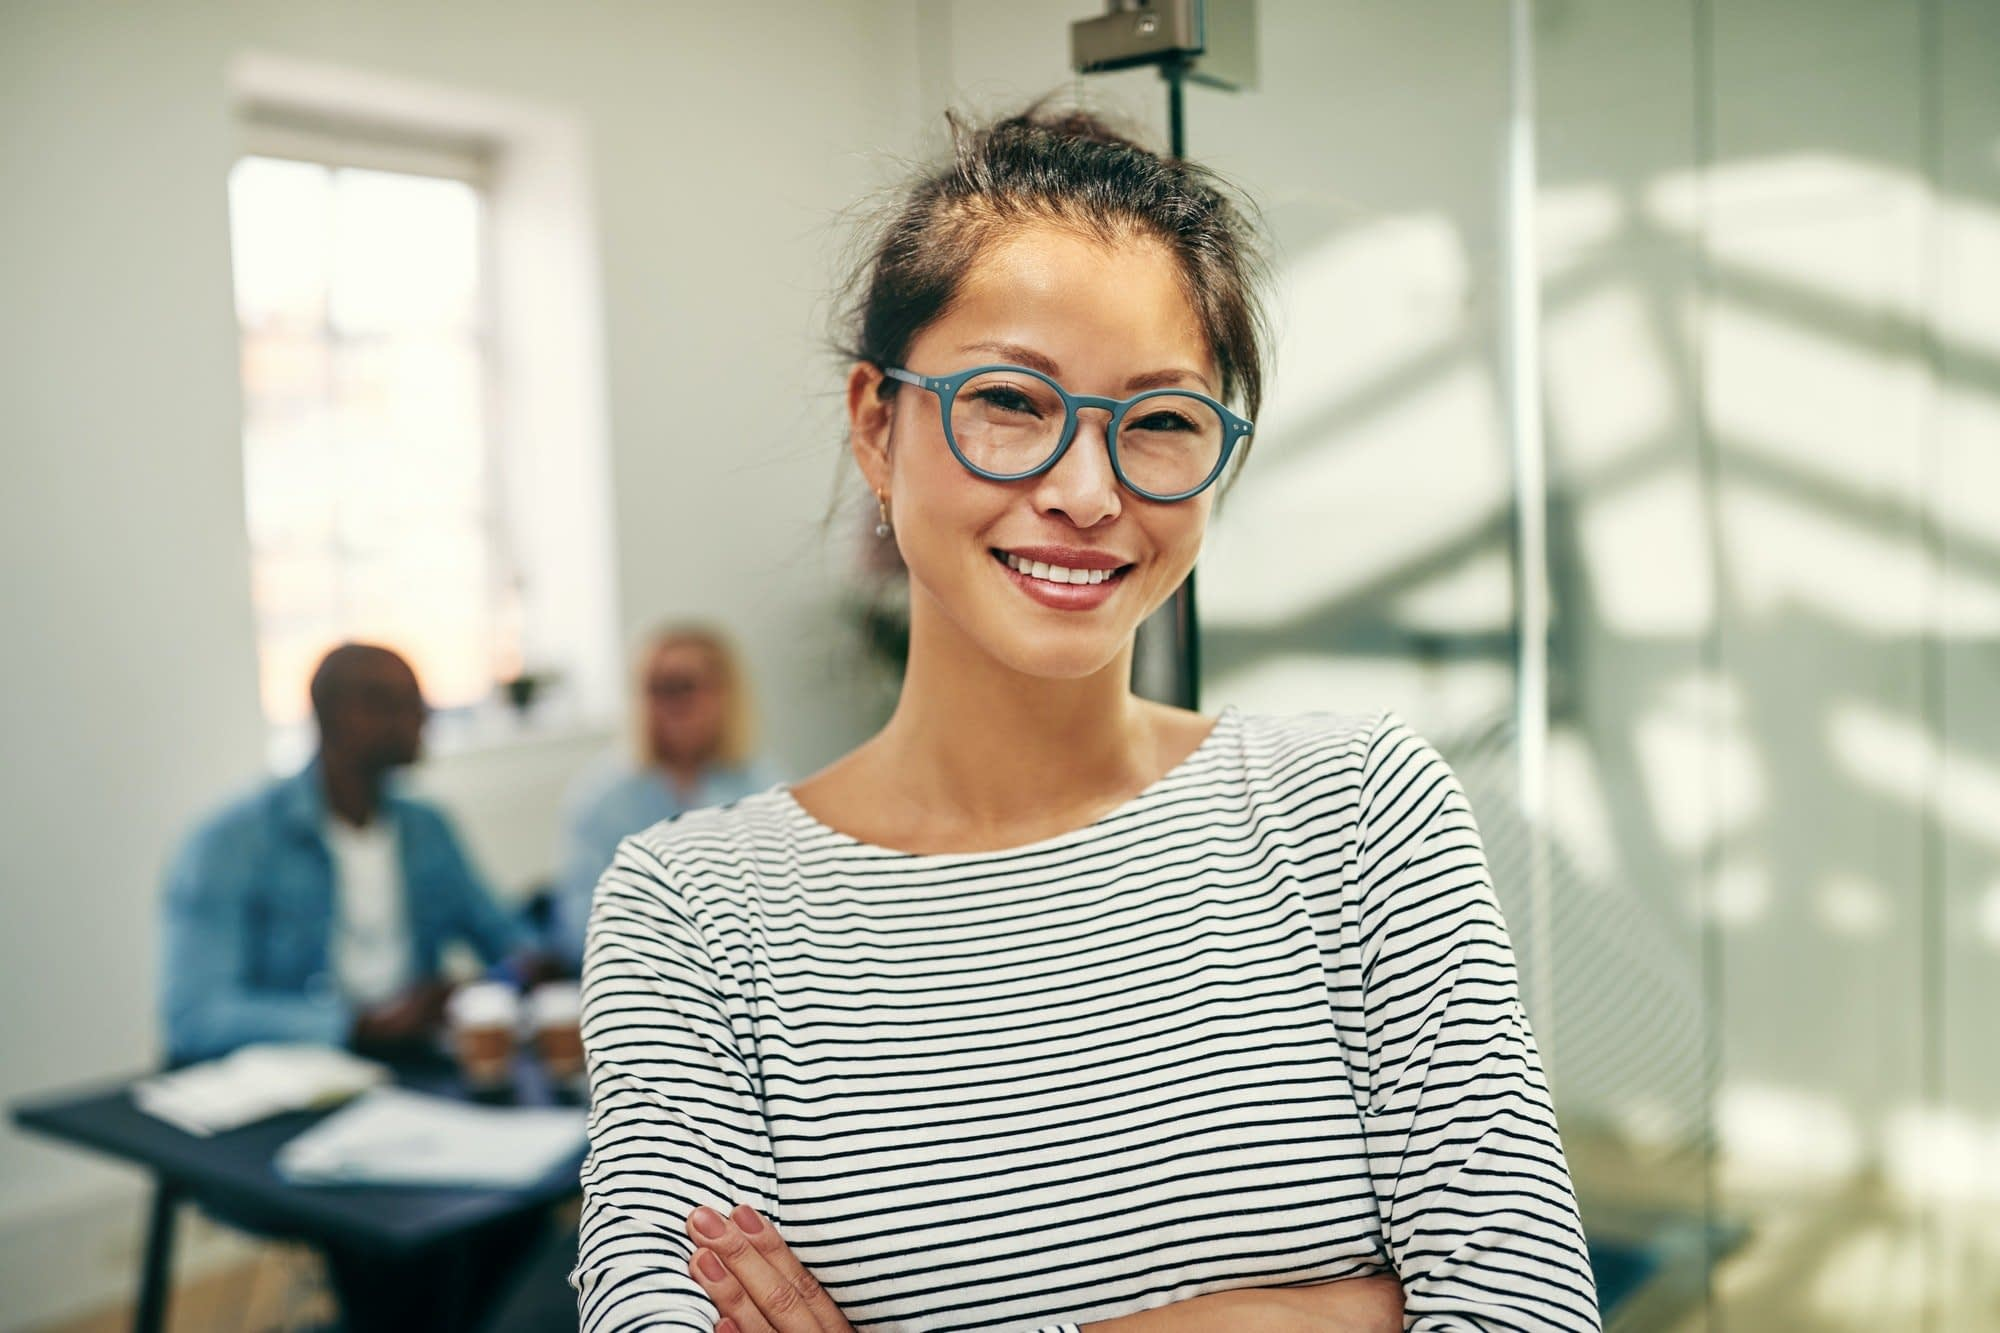 Young Asian businesswoman smiling confidently in a modern office